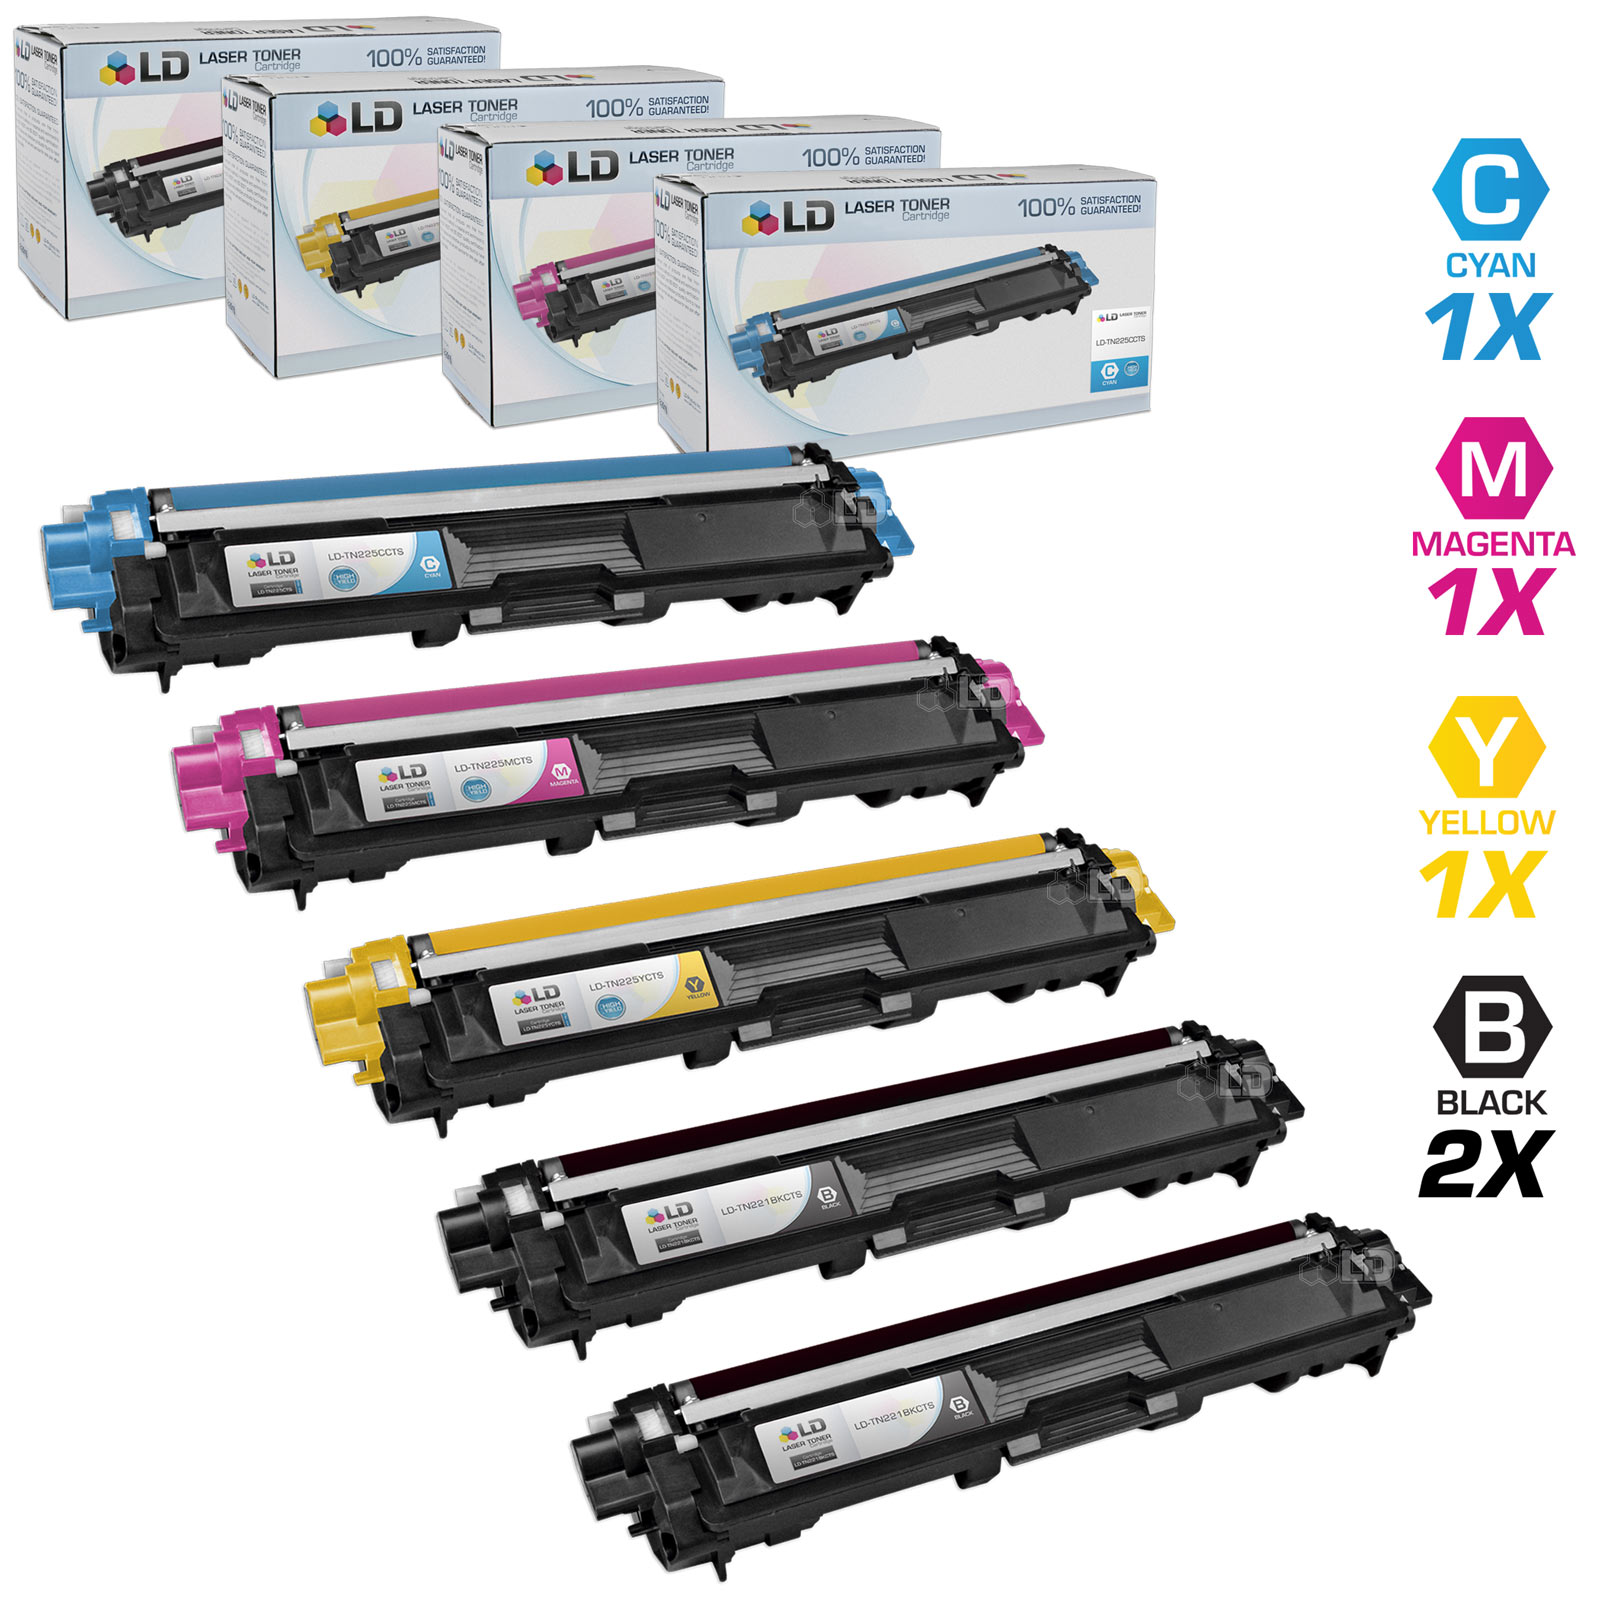 LD Brother Compatible TN221 & TN225 Bulk Set of 5 laser toner Cartridges:  2 of Black & 1 Cyan / Magenta / Yellow for